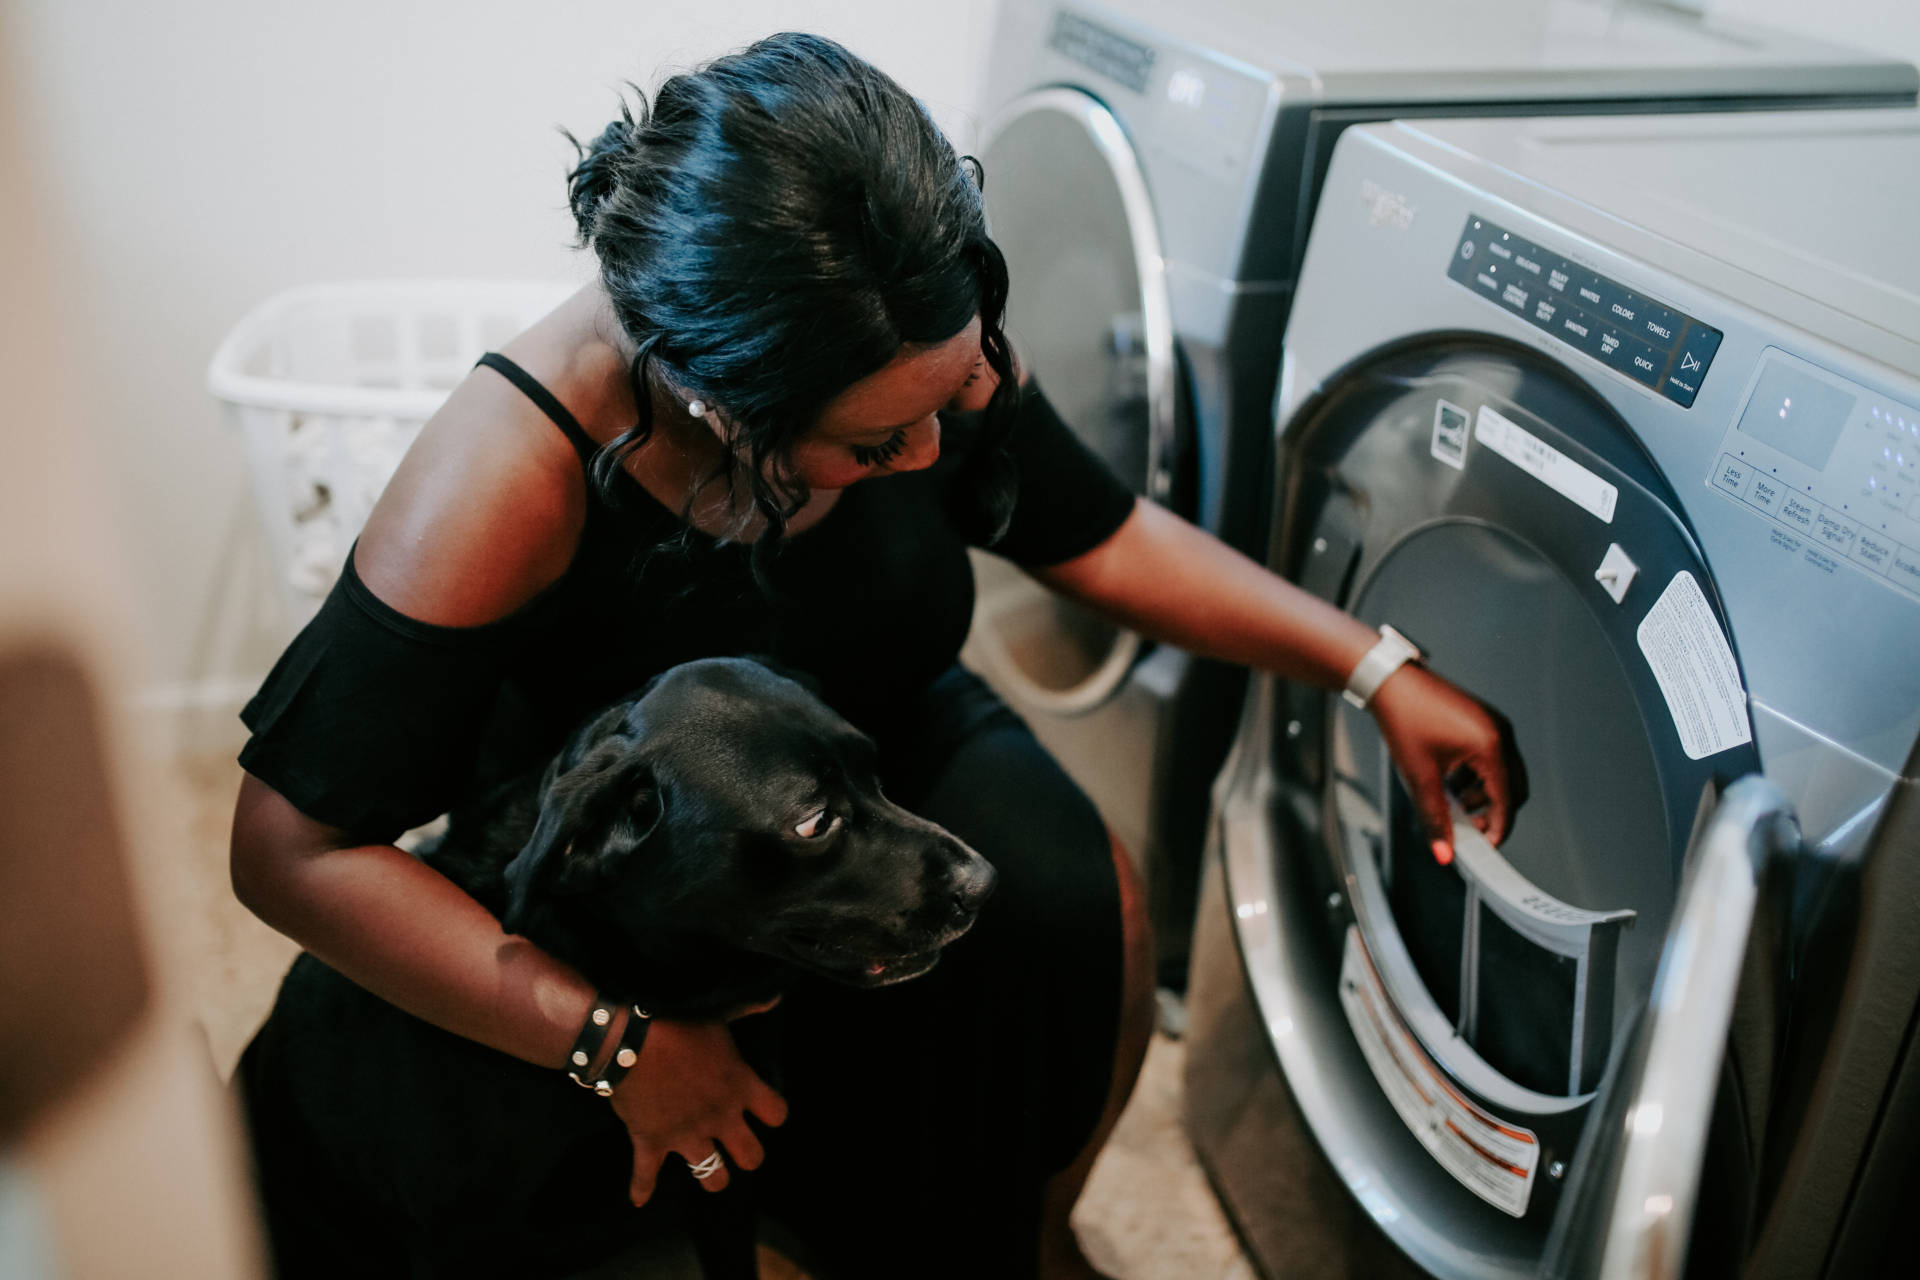 Ruthie Ridley Blog Whirl Pool Load & Go Washer